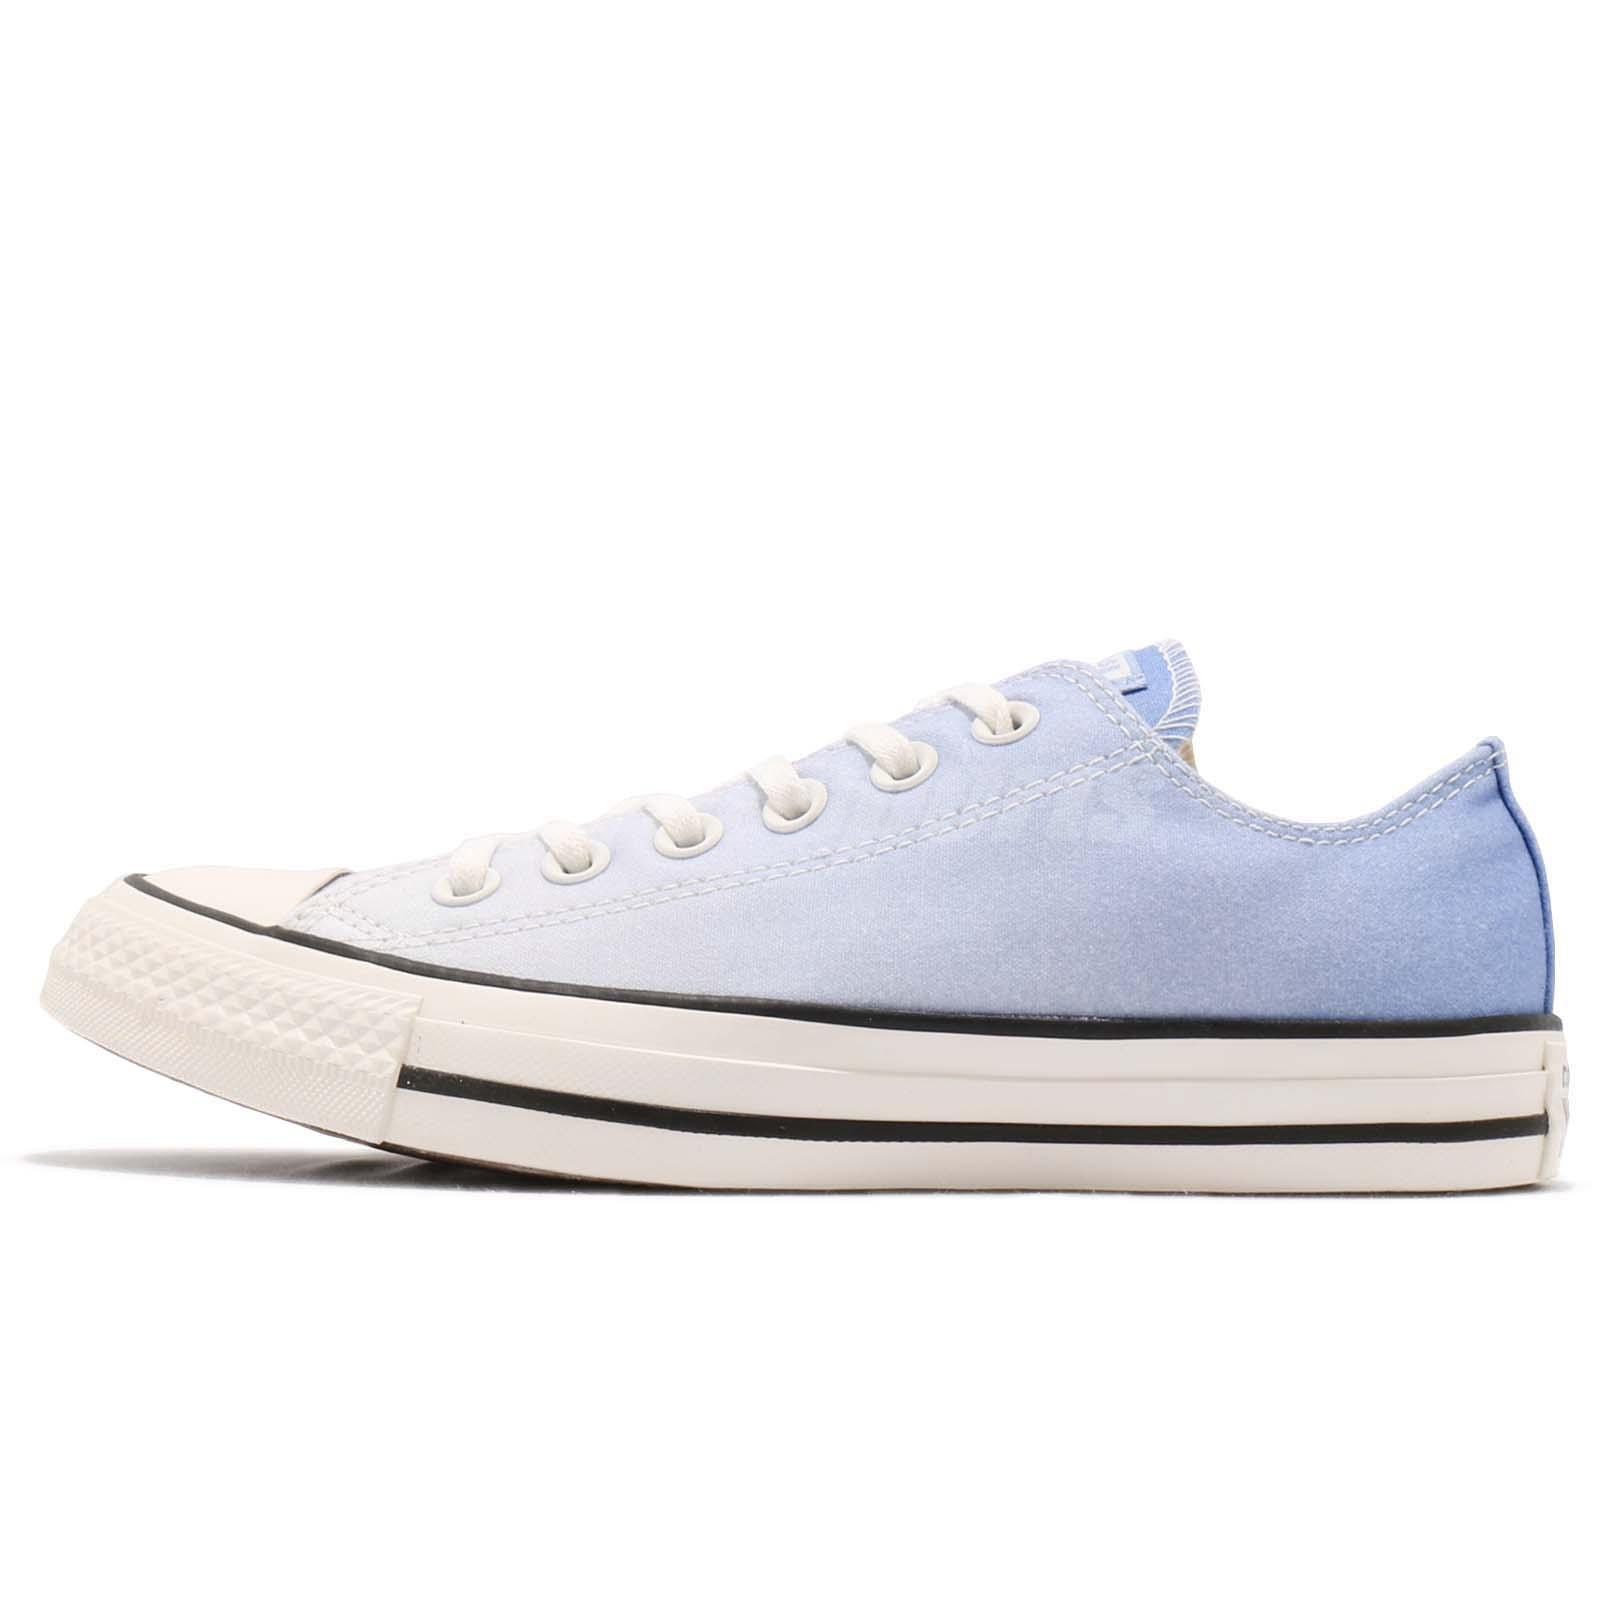 ed399c5398424 Converse Chuck Taylor All Star OX White Blue Black Women Casual Shoes  561725C